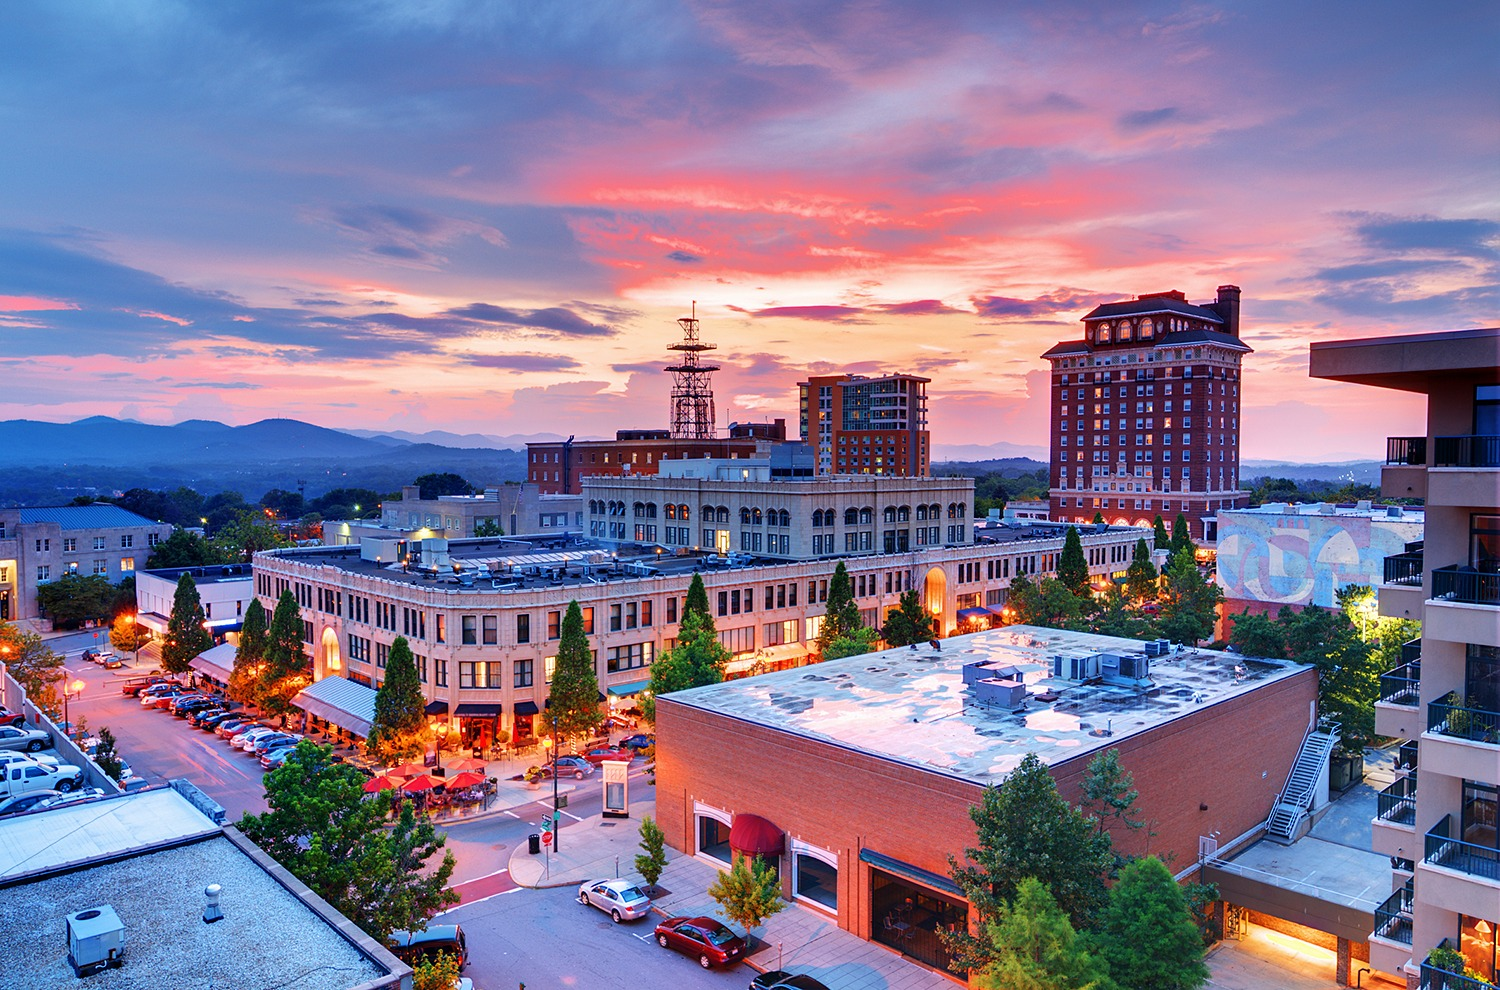 8 Things to do in Ashville, North Carolina - Quicken Loans Zing Blog